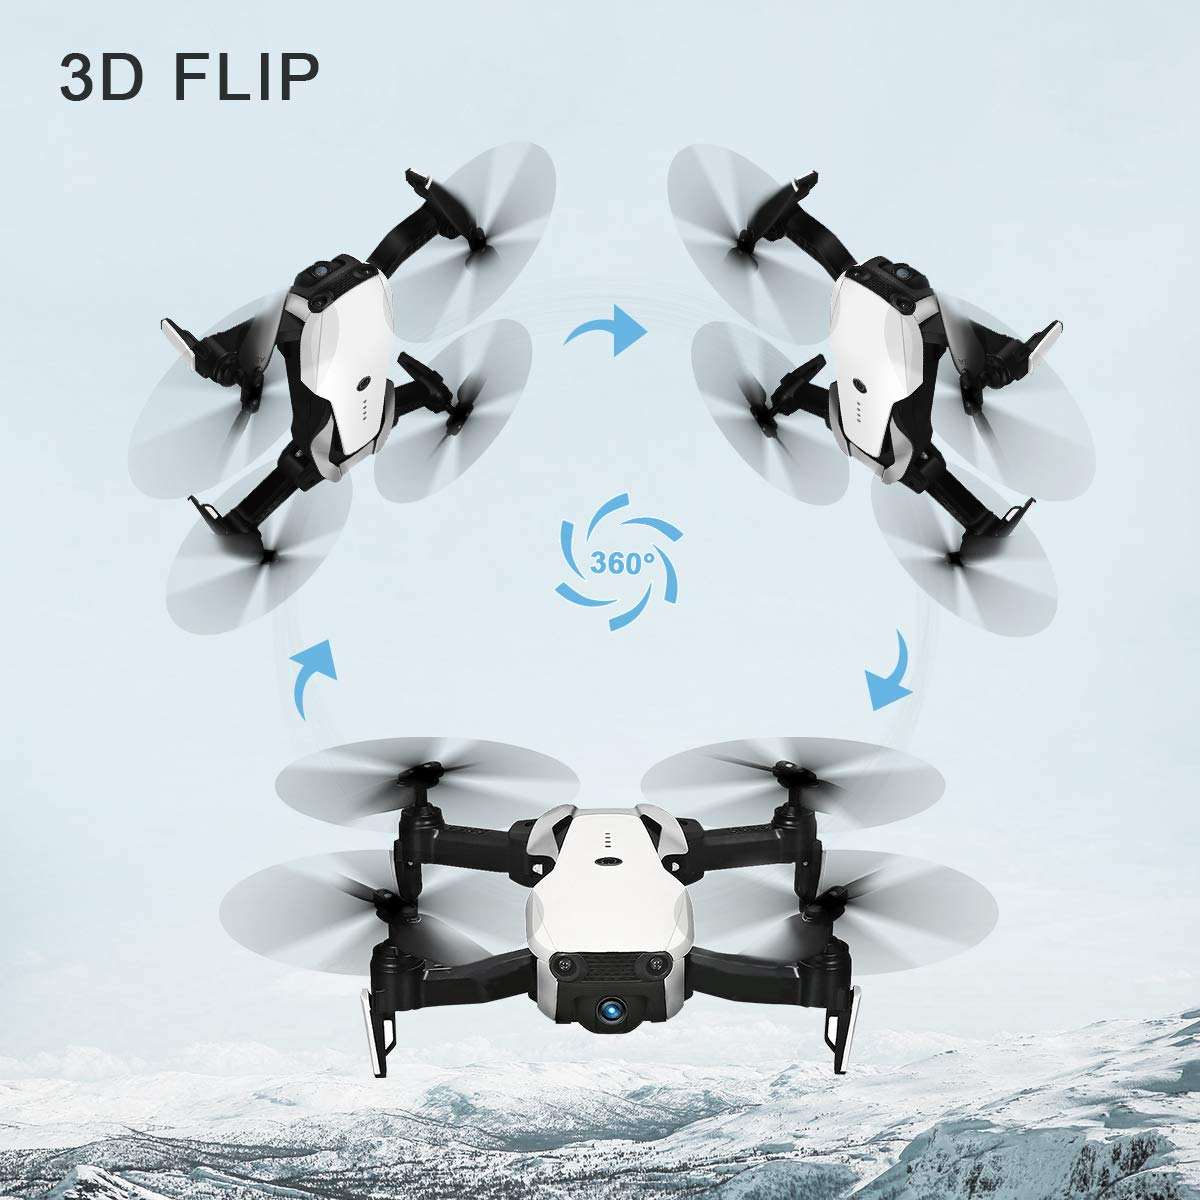 Drones with Camera 1080P for Adults,EACHINE E511 WiFi FPV Live Video Quadcopter with 120° FOV 1080P HD Camera, 17mins Long Flight Time Foldable RC Drone RTF - Altitude Hold, 3D Flip, APP Control by EACHINE (Image #7)